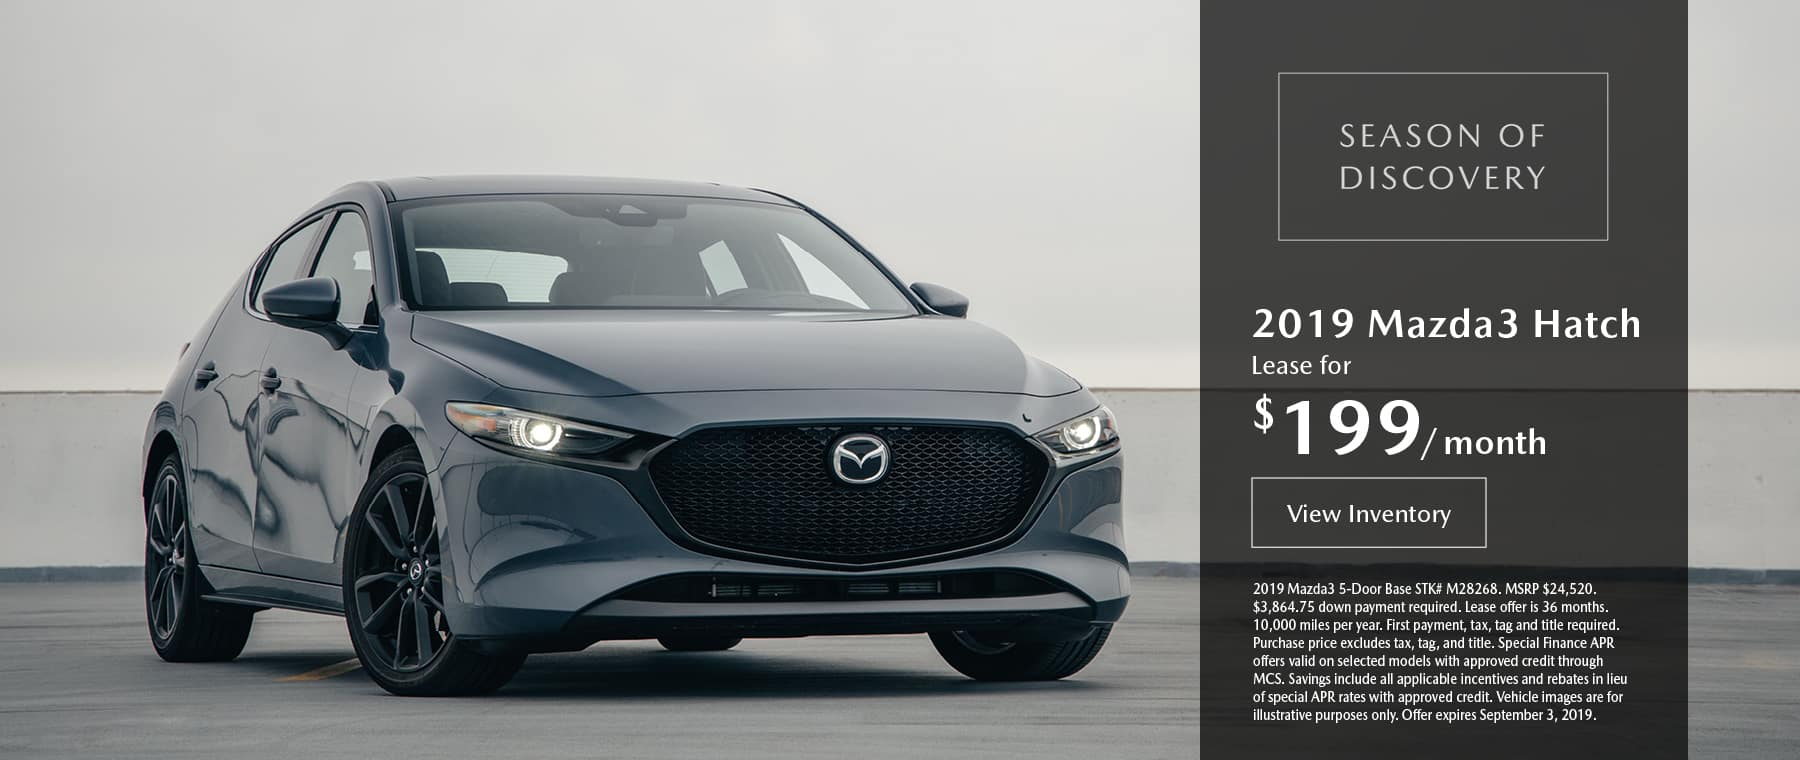 Lease the 2019 Mazda3 hatchback for $199 per month, plus tax.